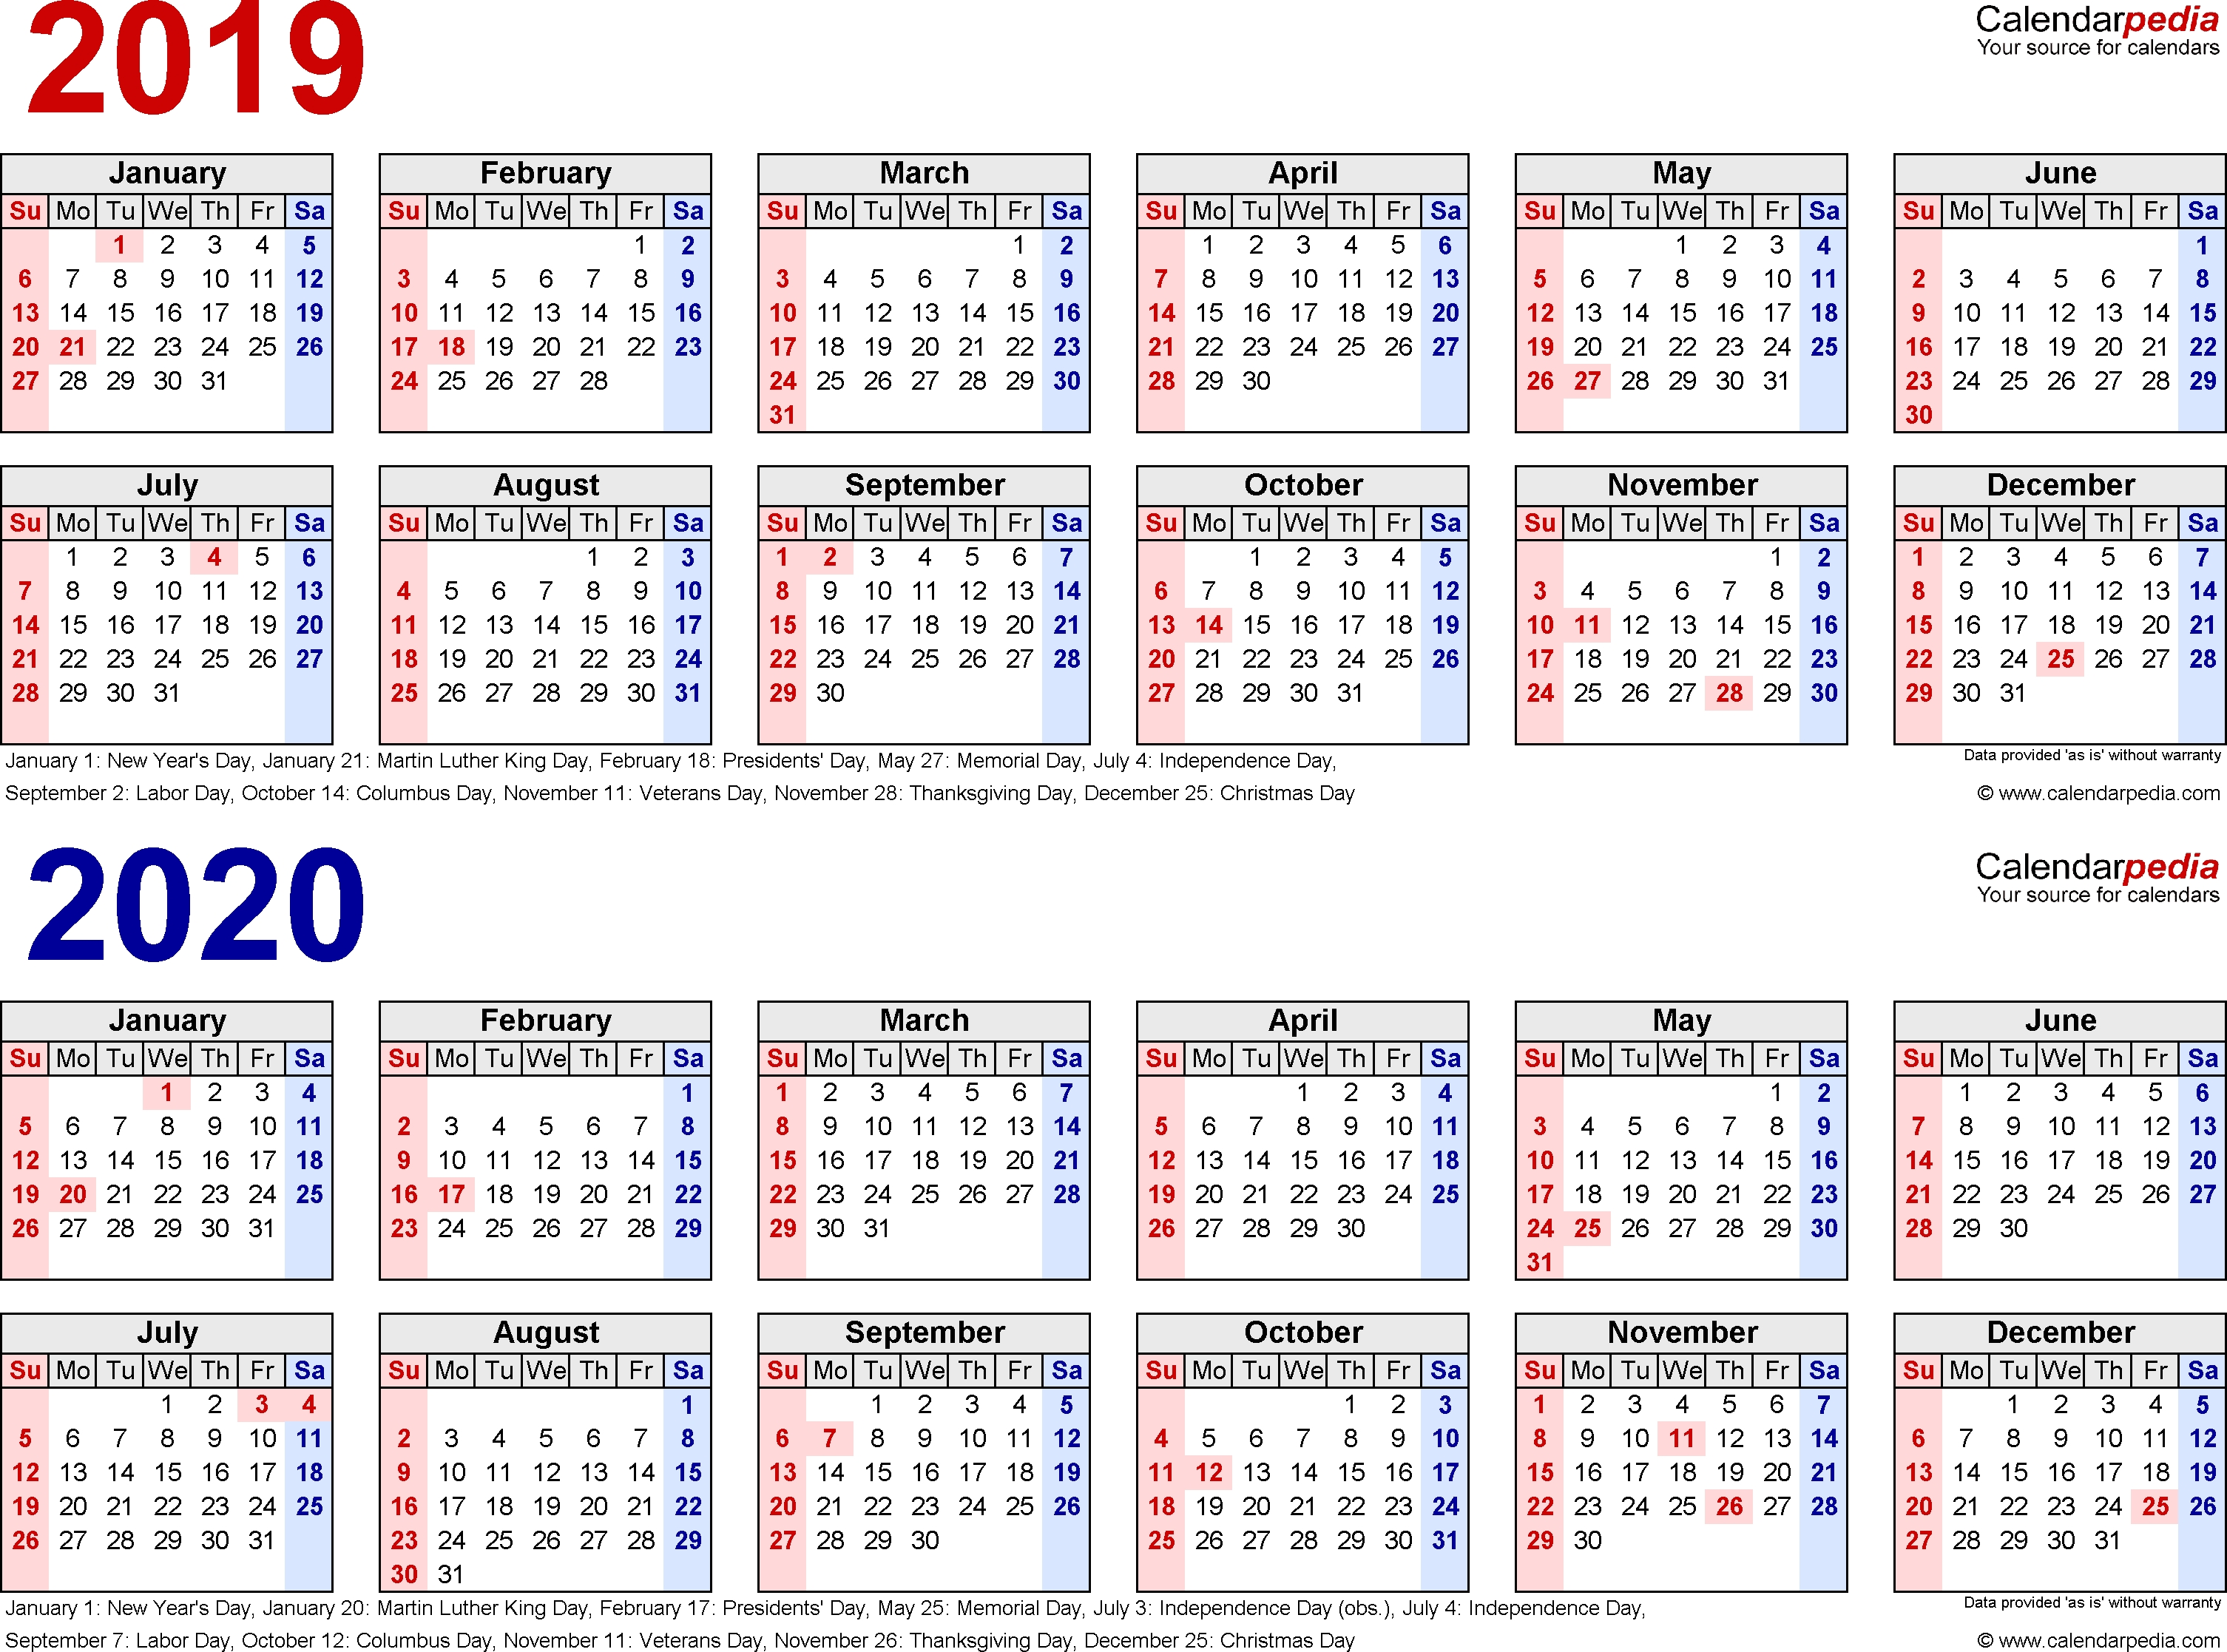 2019-2020 Two Year Calendar - Free Printable Microsoft Word throughout More Calendar Templates: 2019 2020 Web Calendar